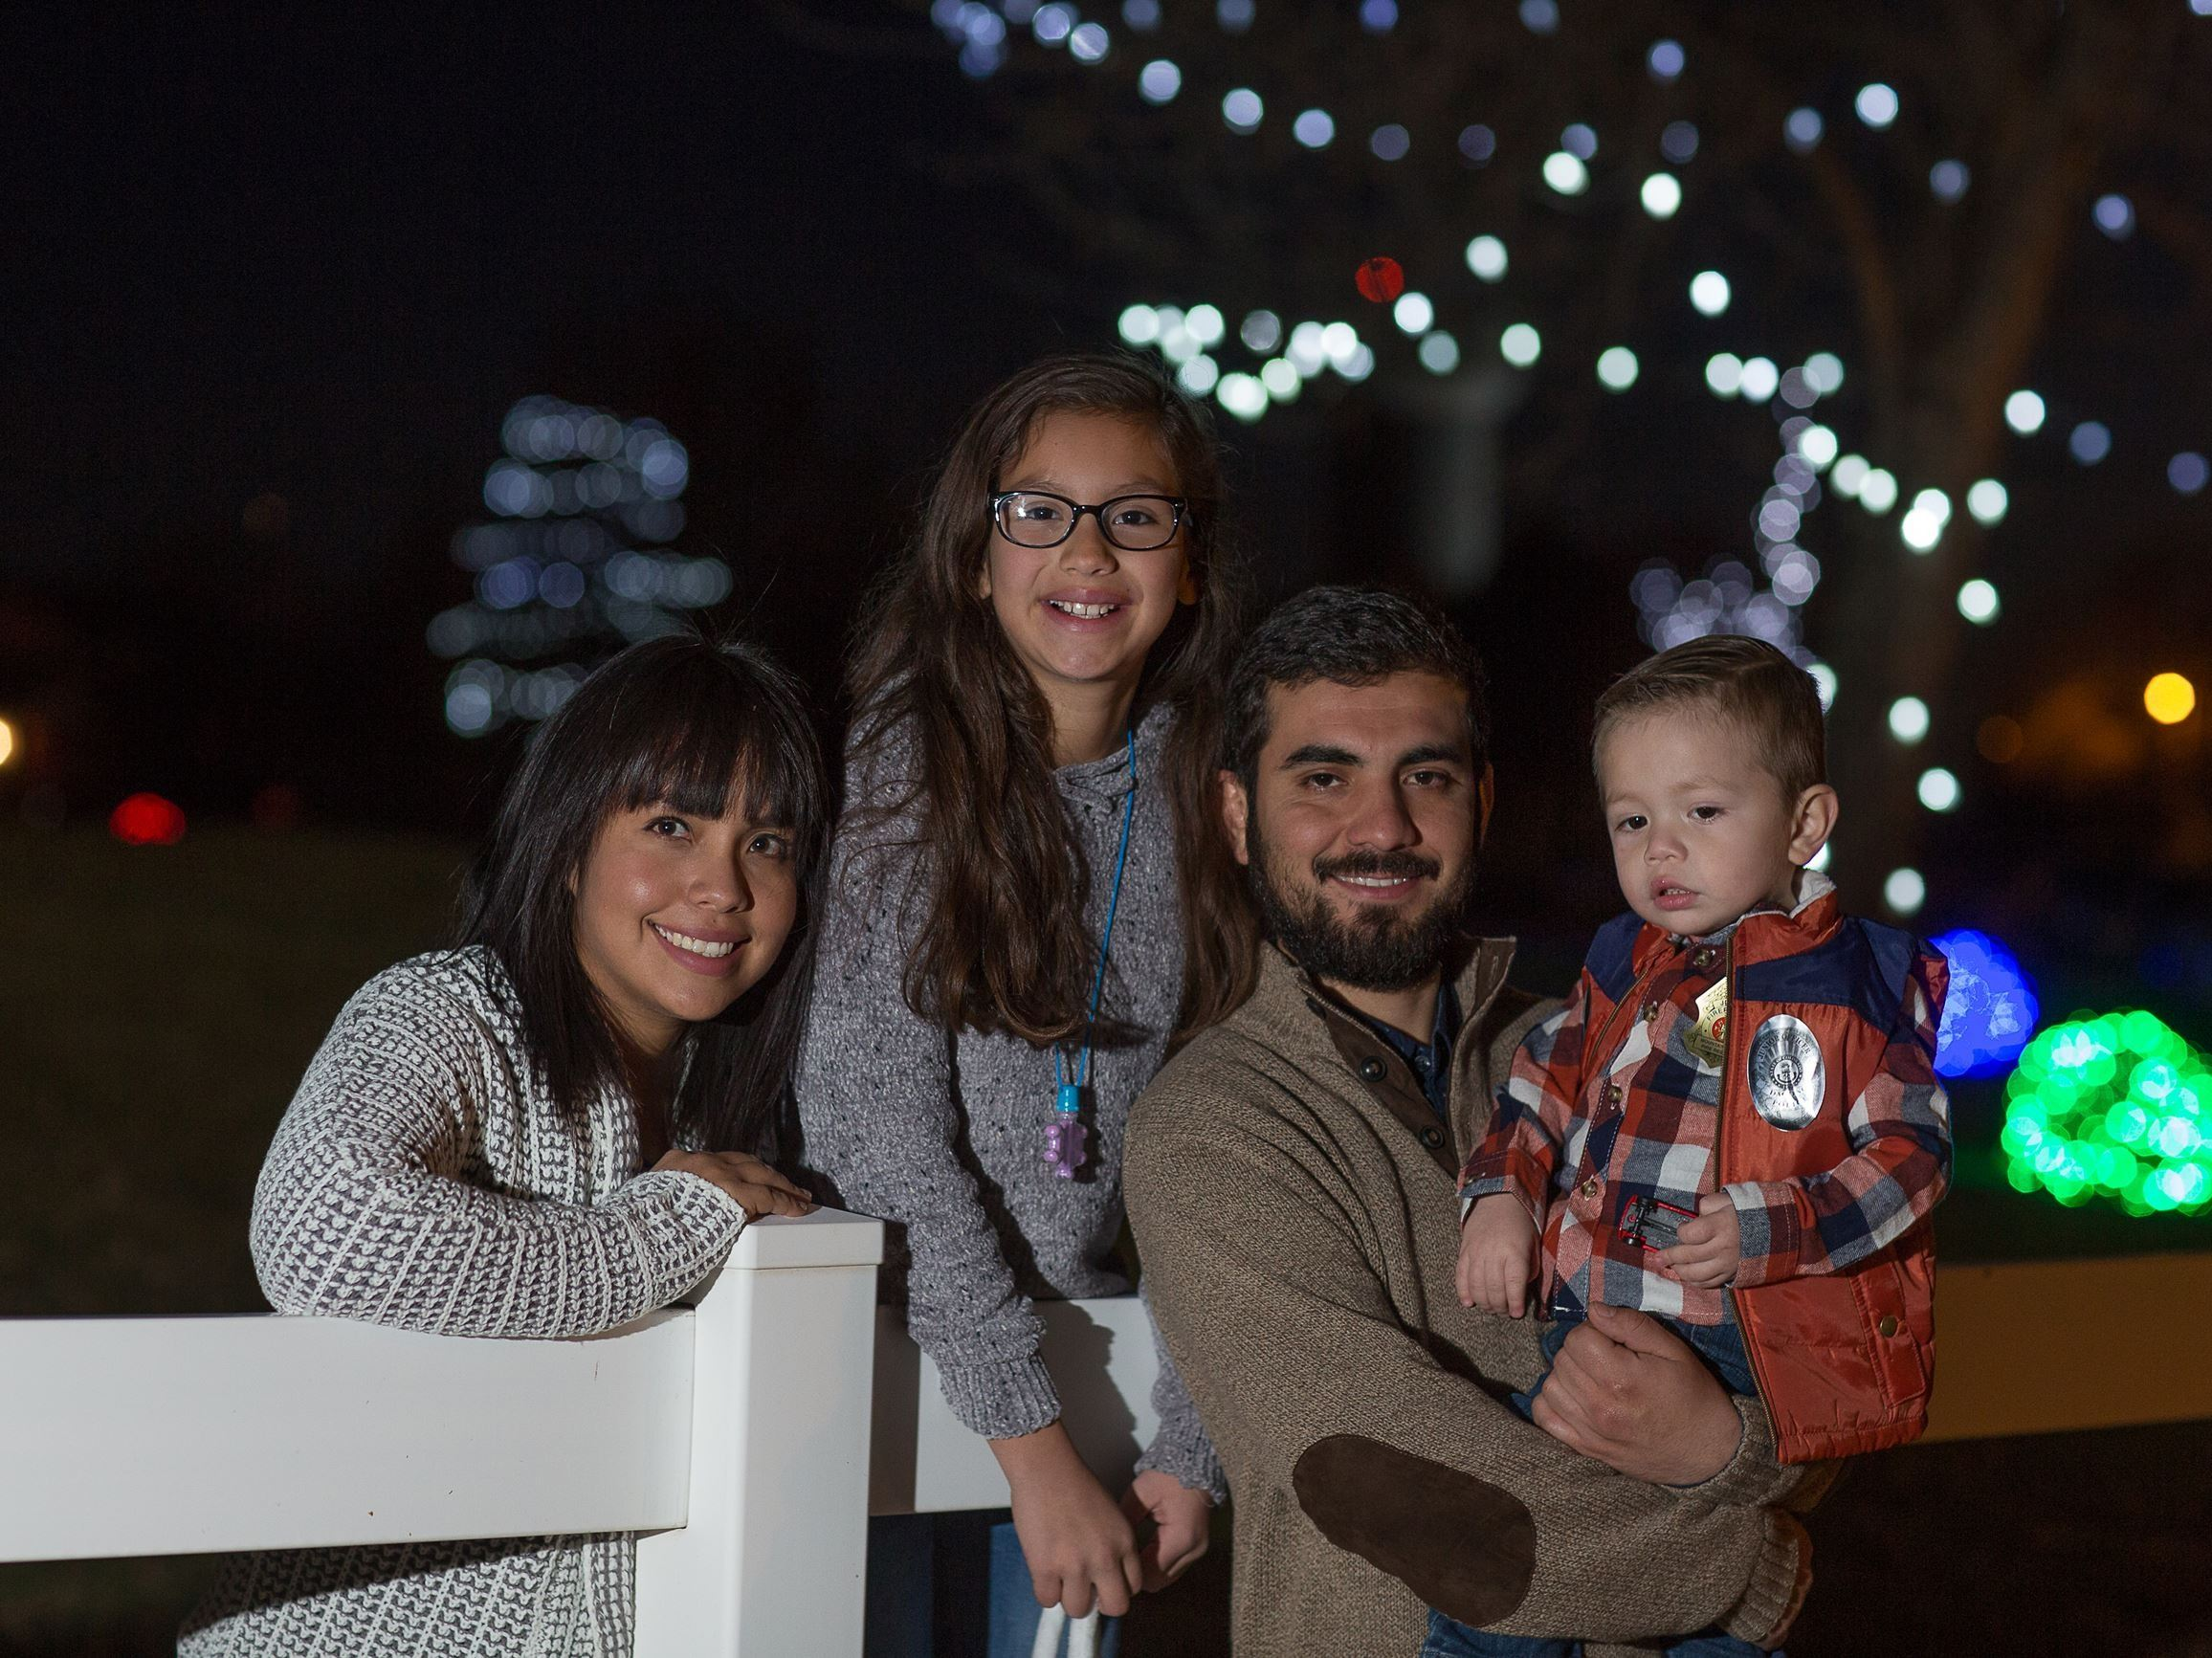 Family in front of lights